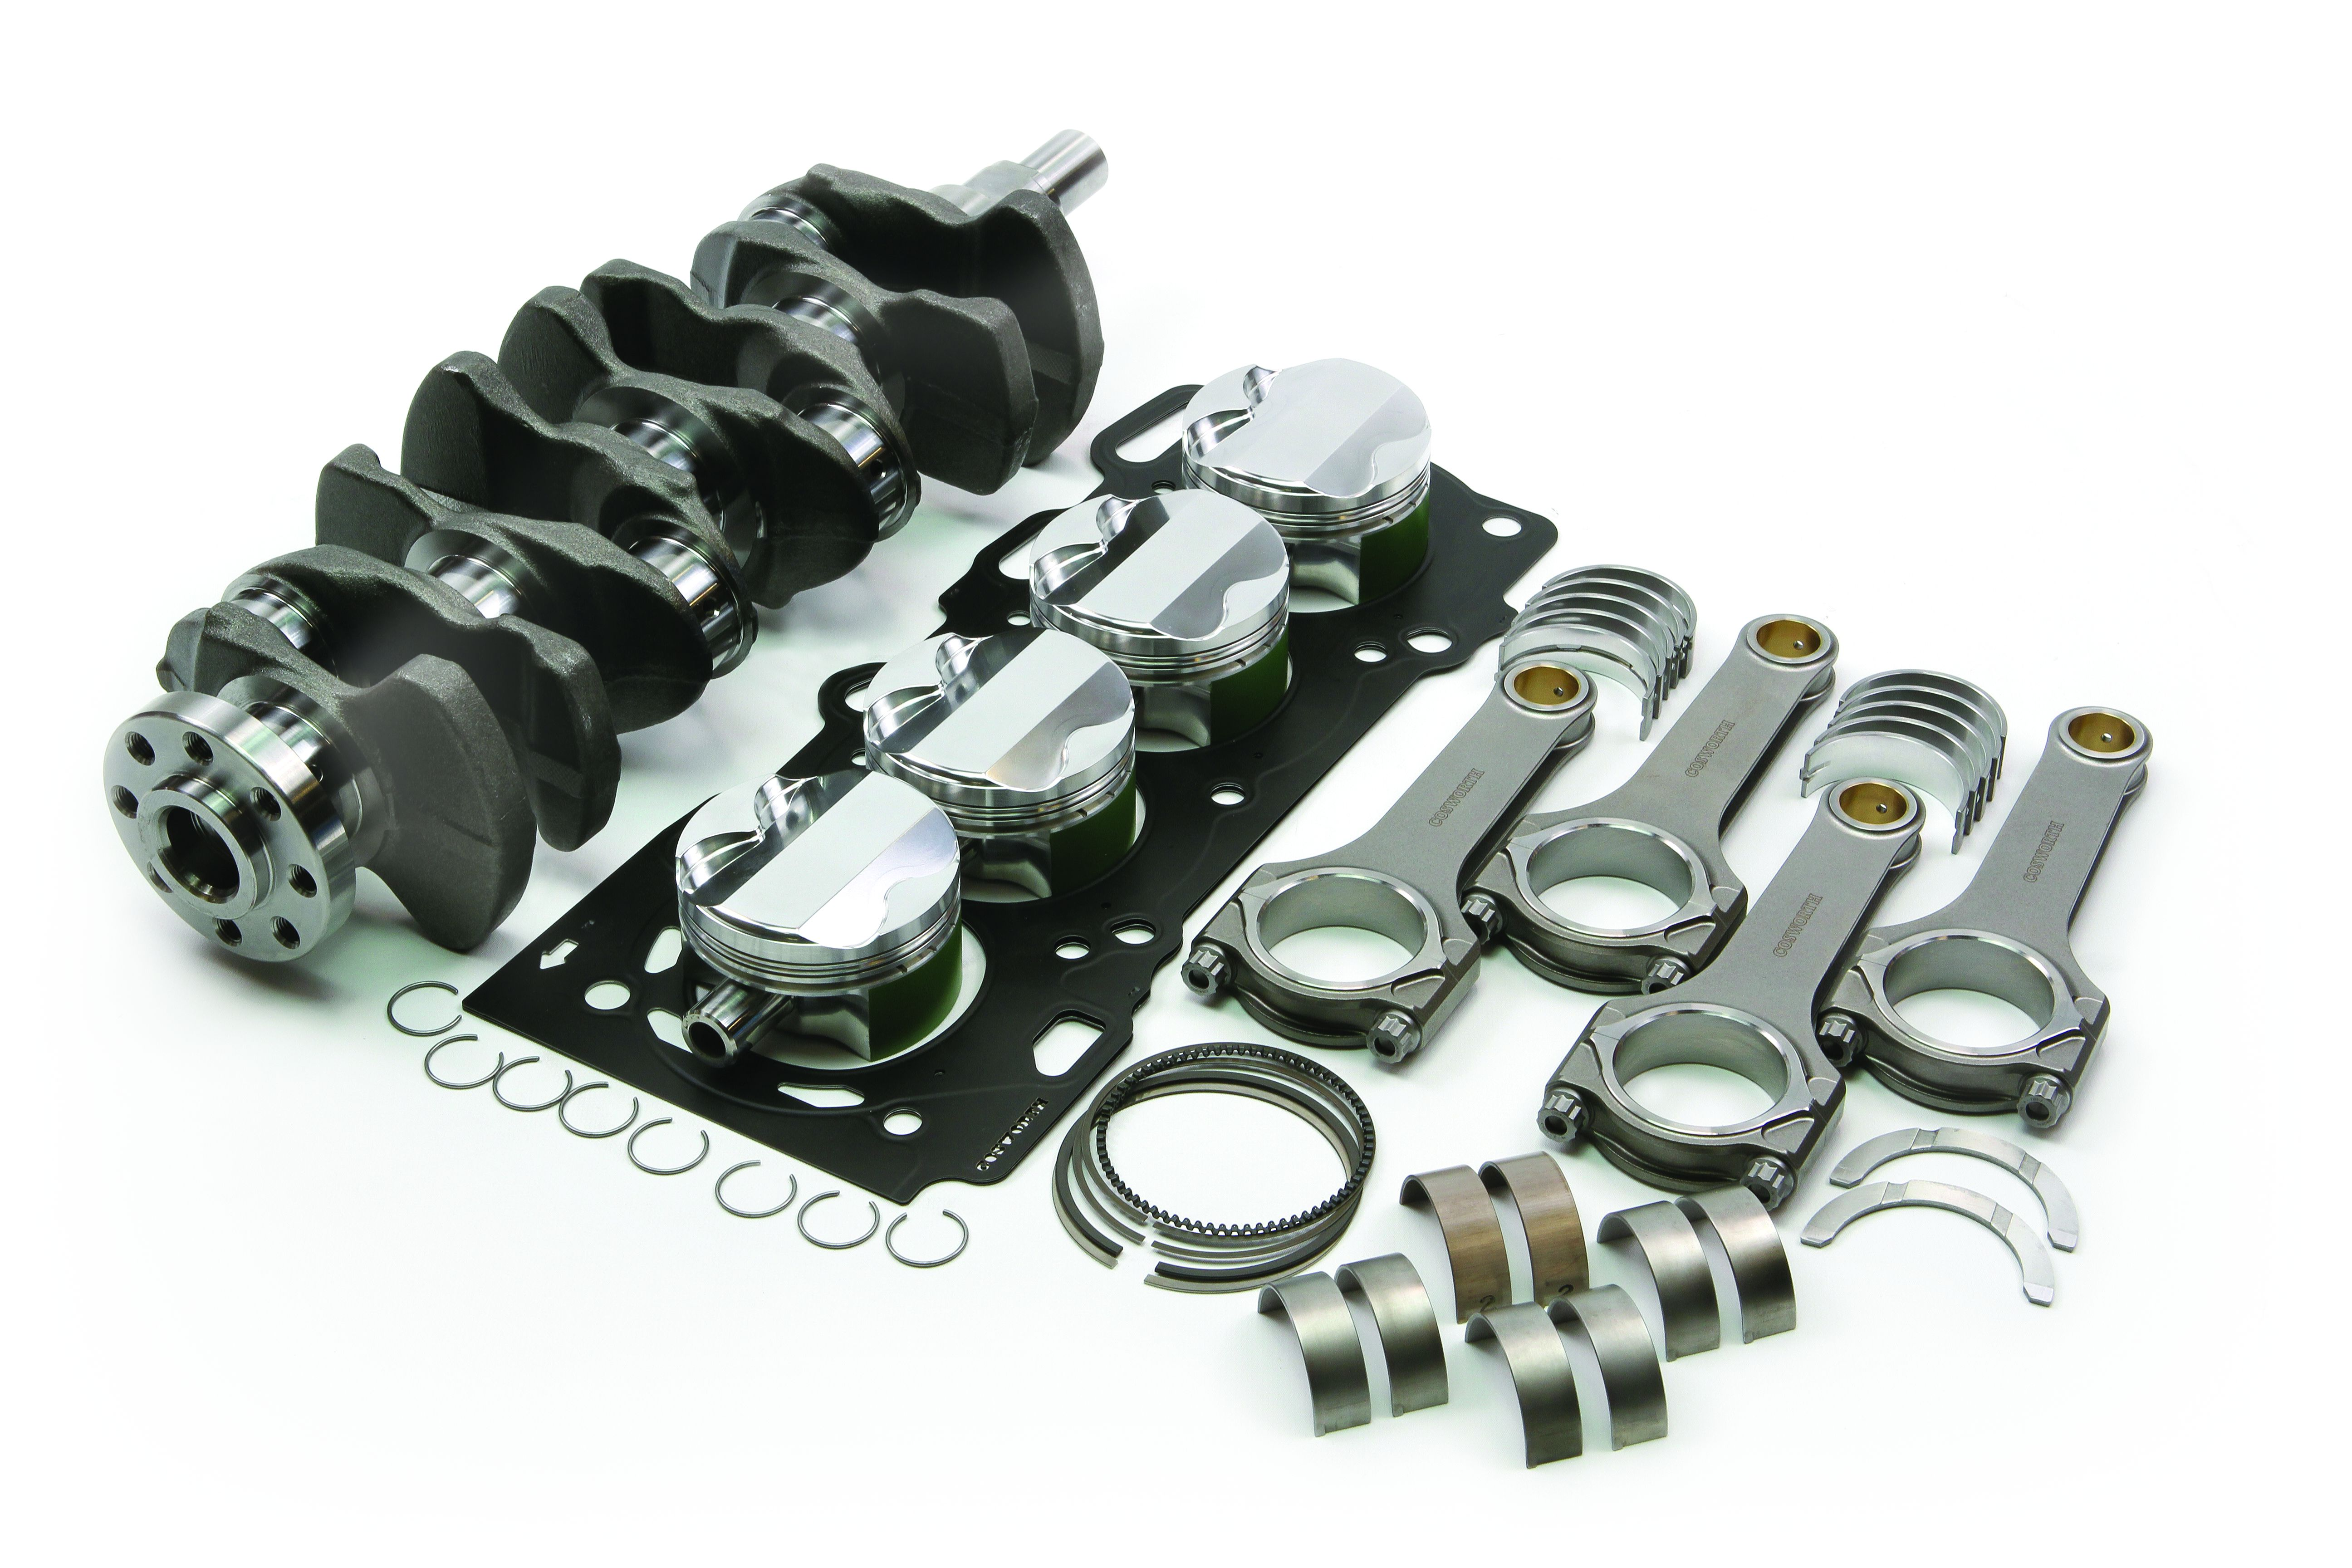 New Cosworth Components for Toyota 2ZZ Engine